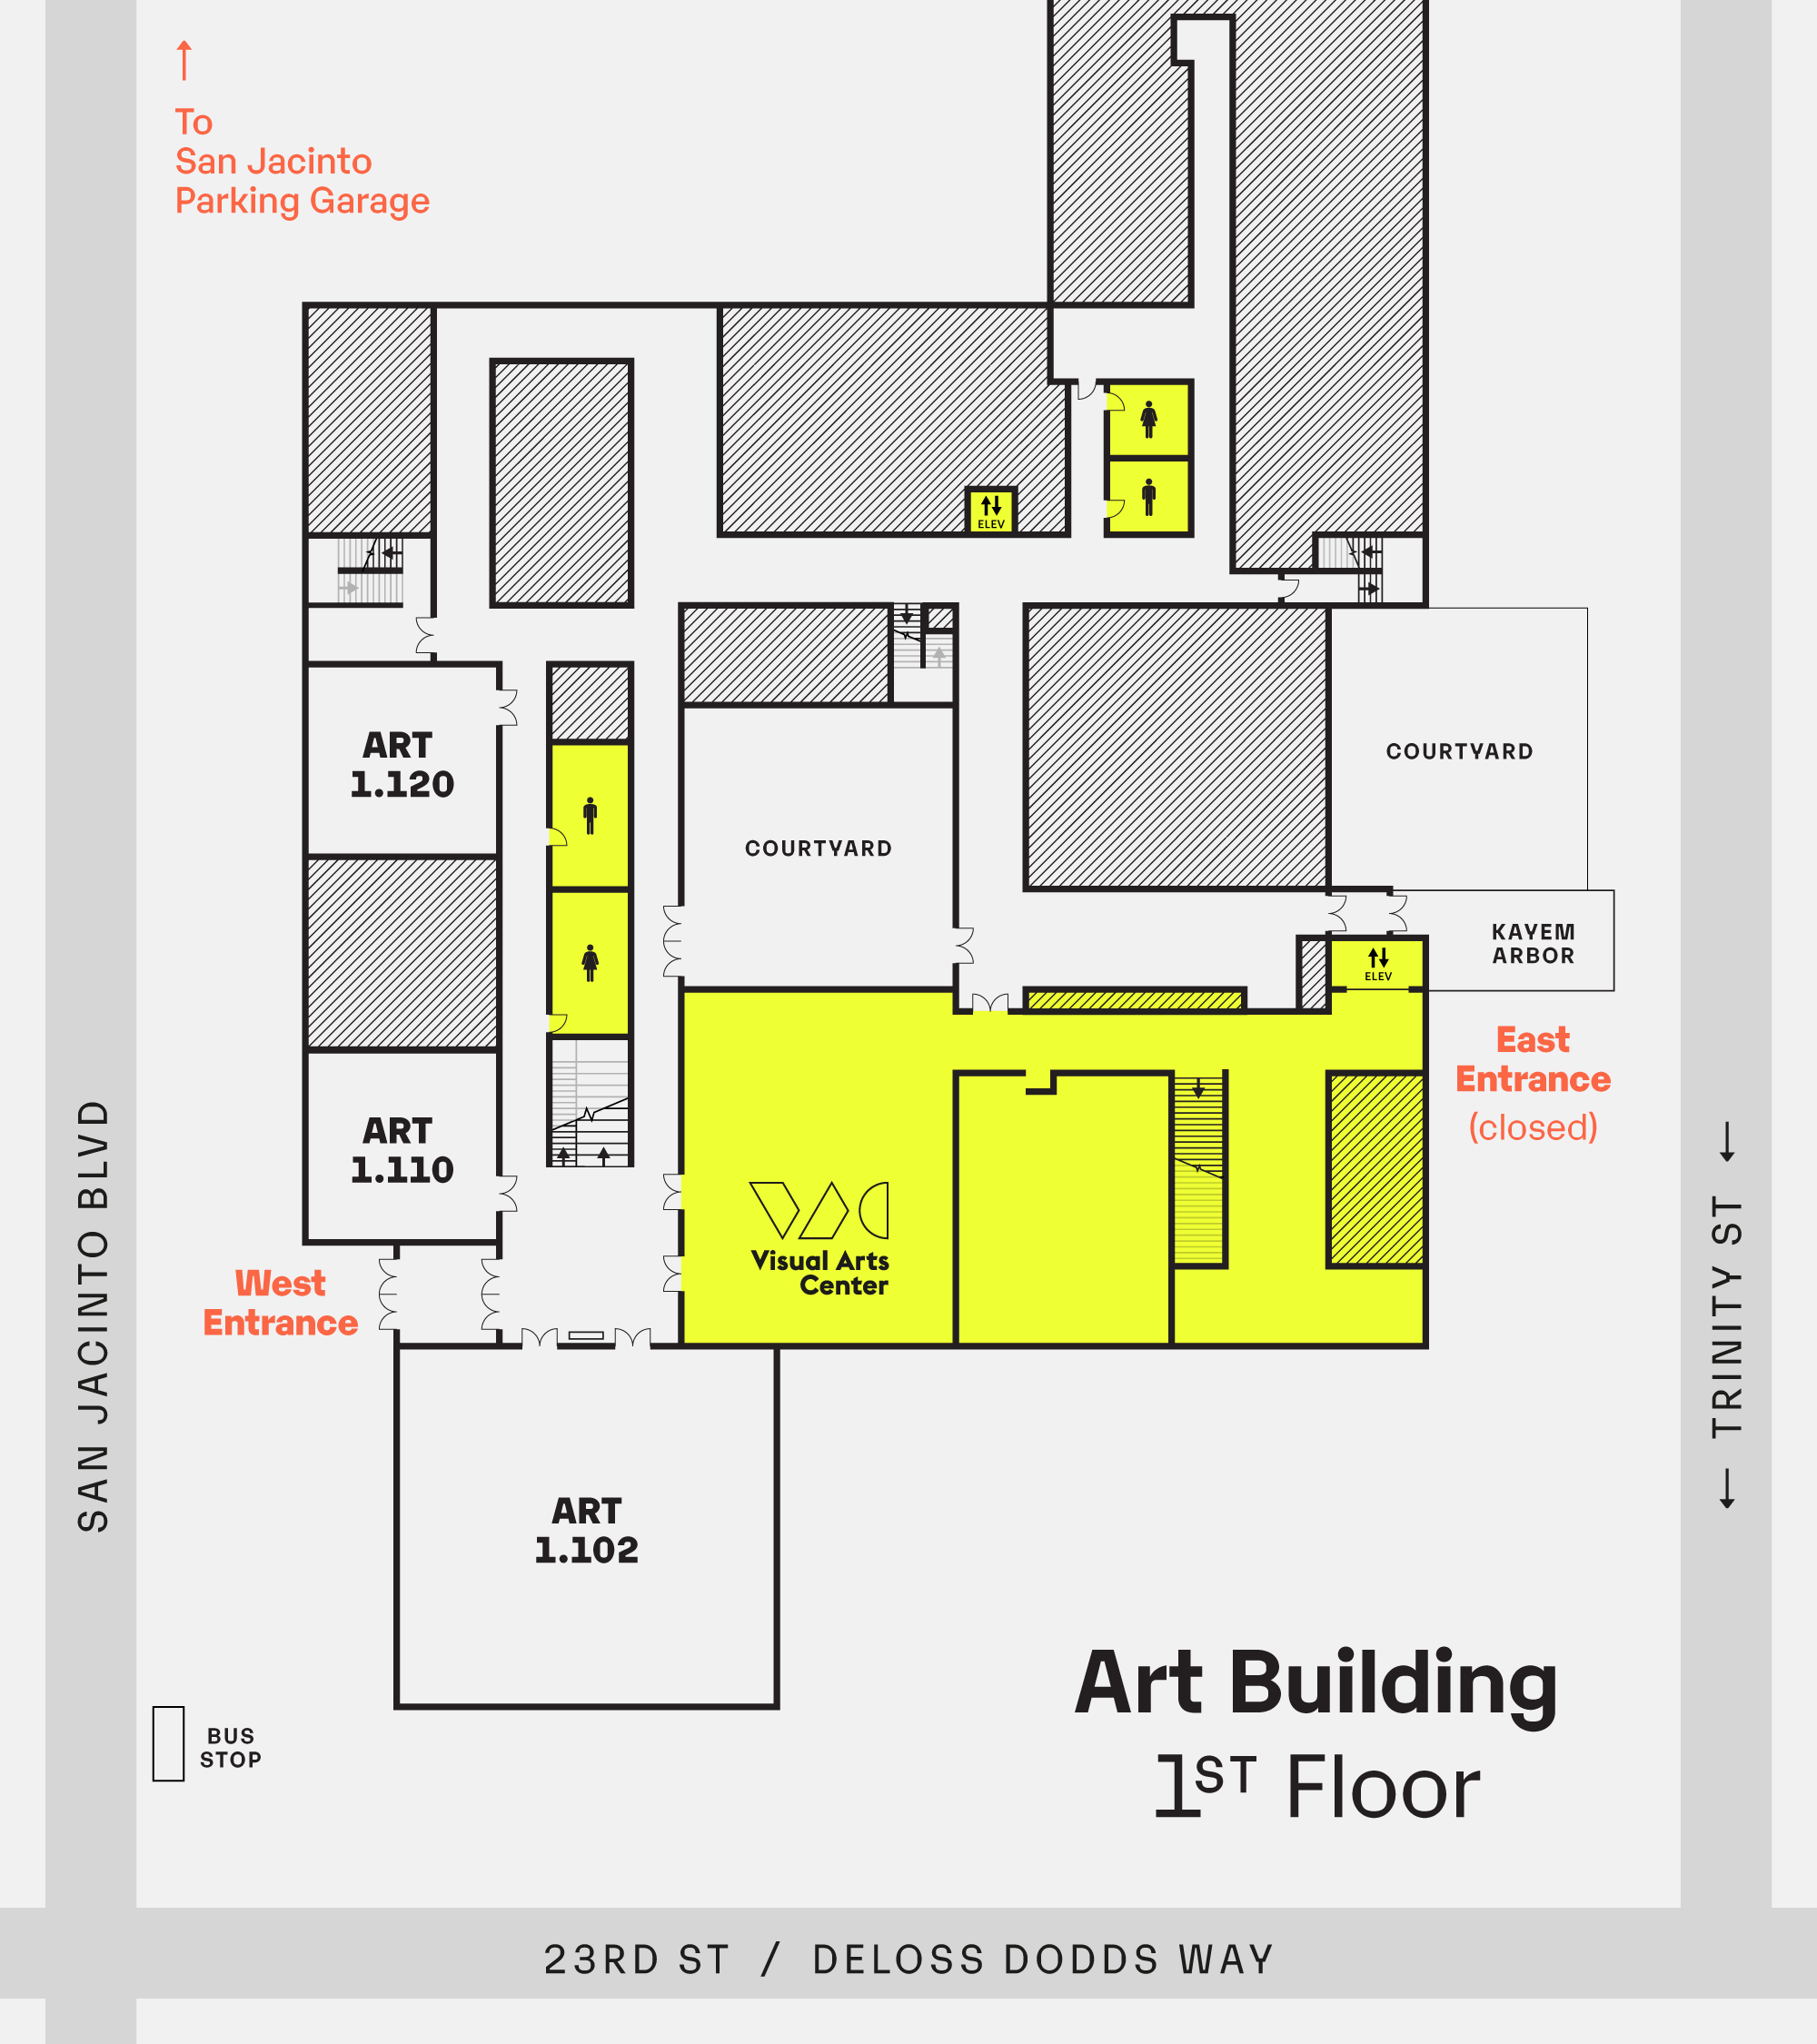 map of Visual Arts Center and relevant spaces within the Art Building